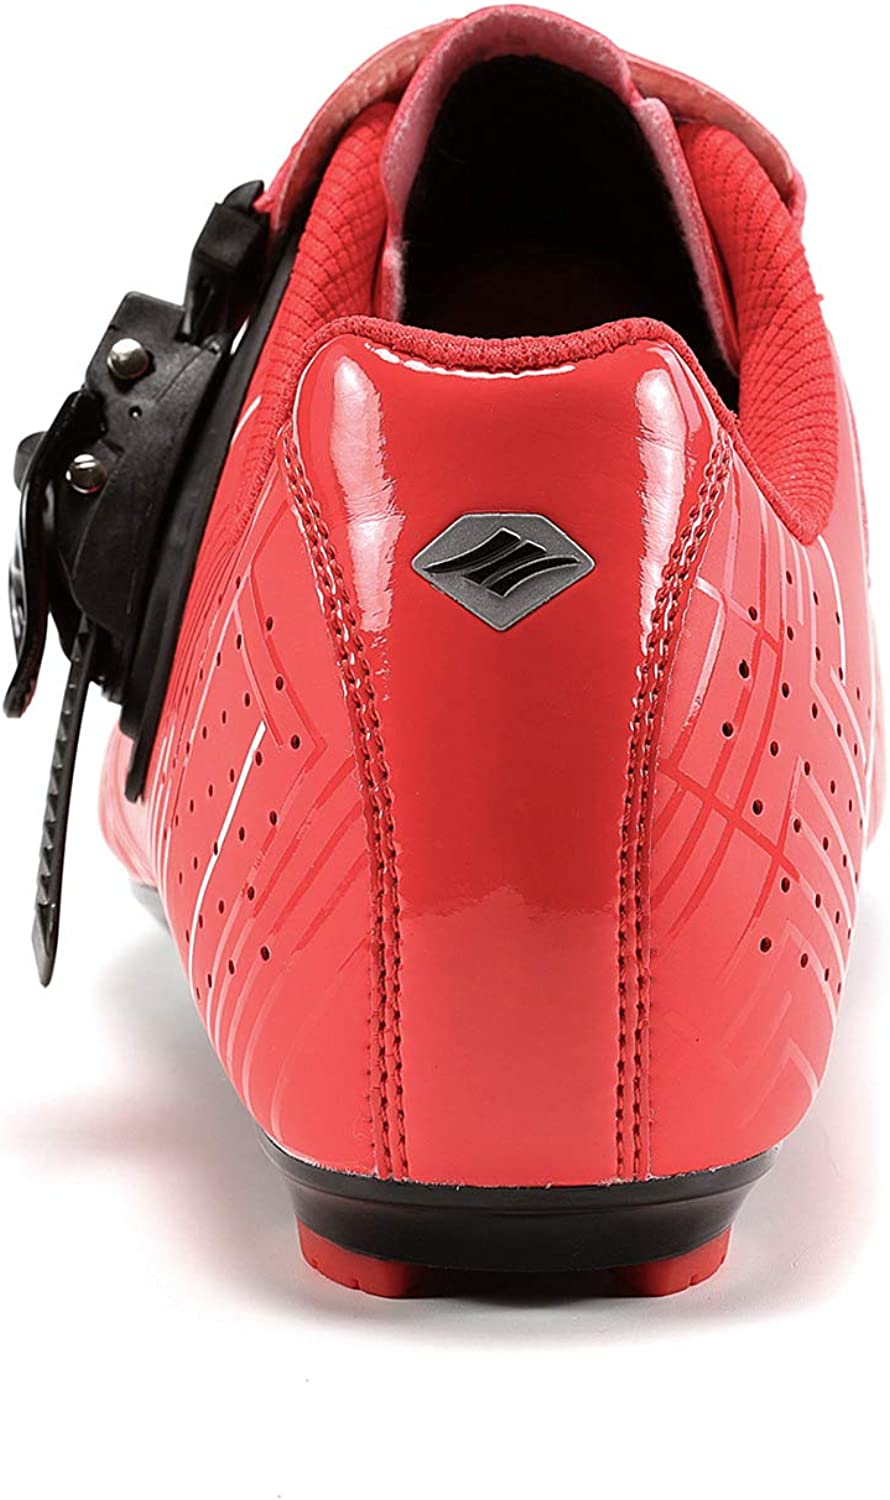 Roadway Santic Cycling Shoes Mens or Womens Road Cycling Riding Shoes Spin Shoes with Buckle